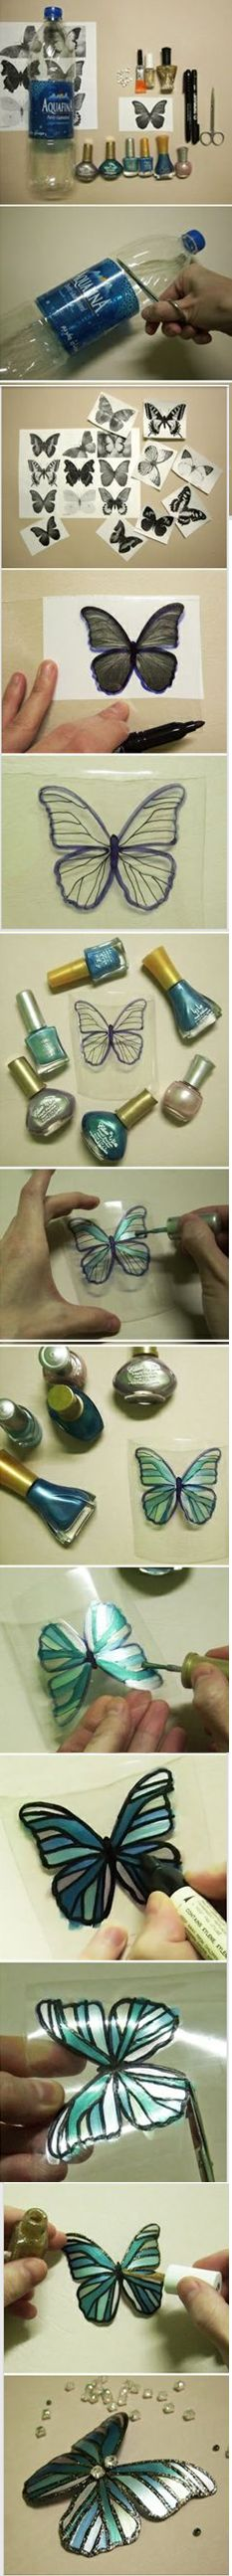 Make a butterfly from a fizzy drinks bottle. I have reworked this into a pic as the the original link led to spam